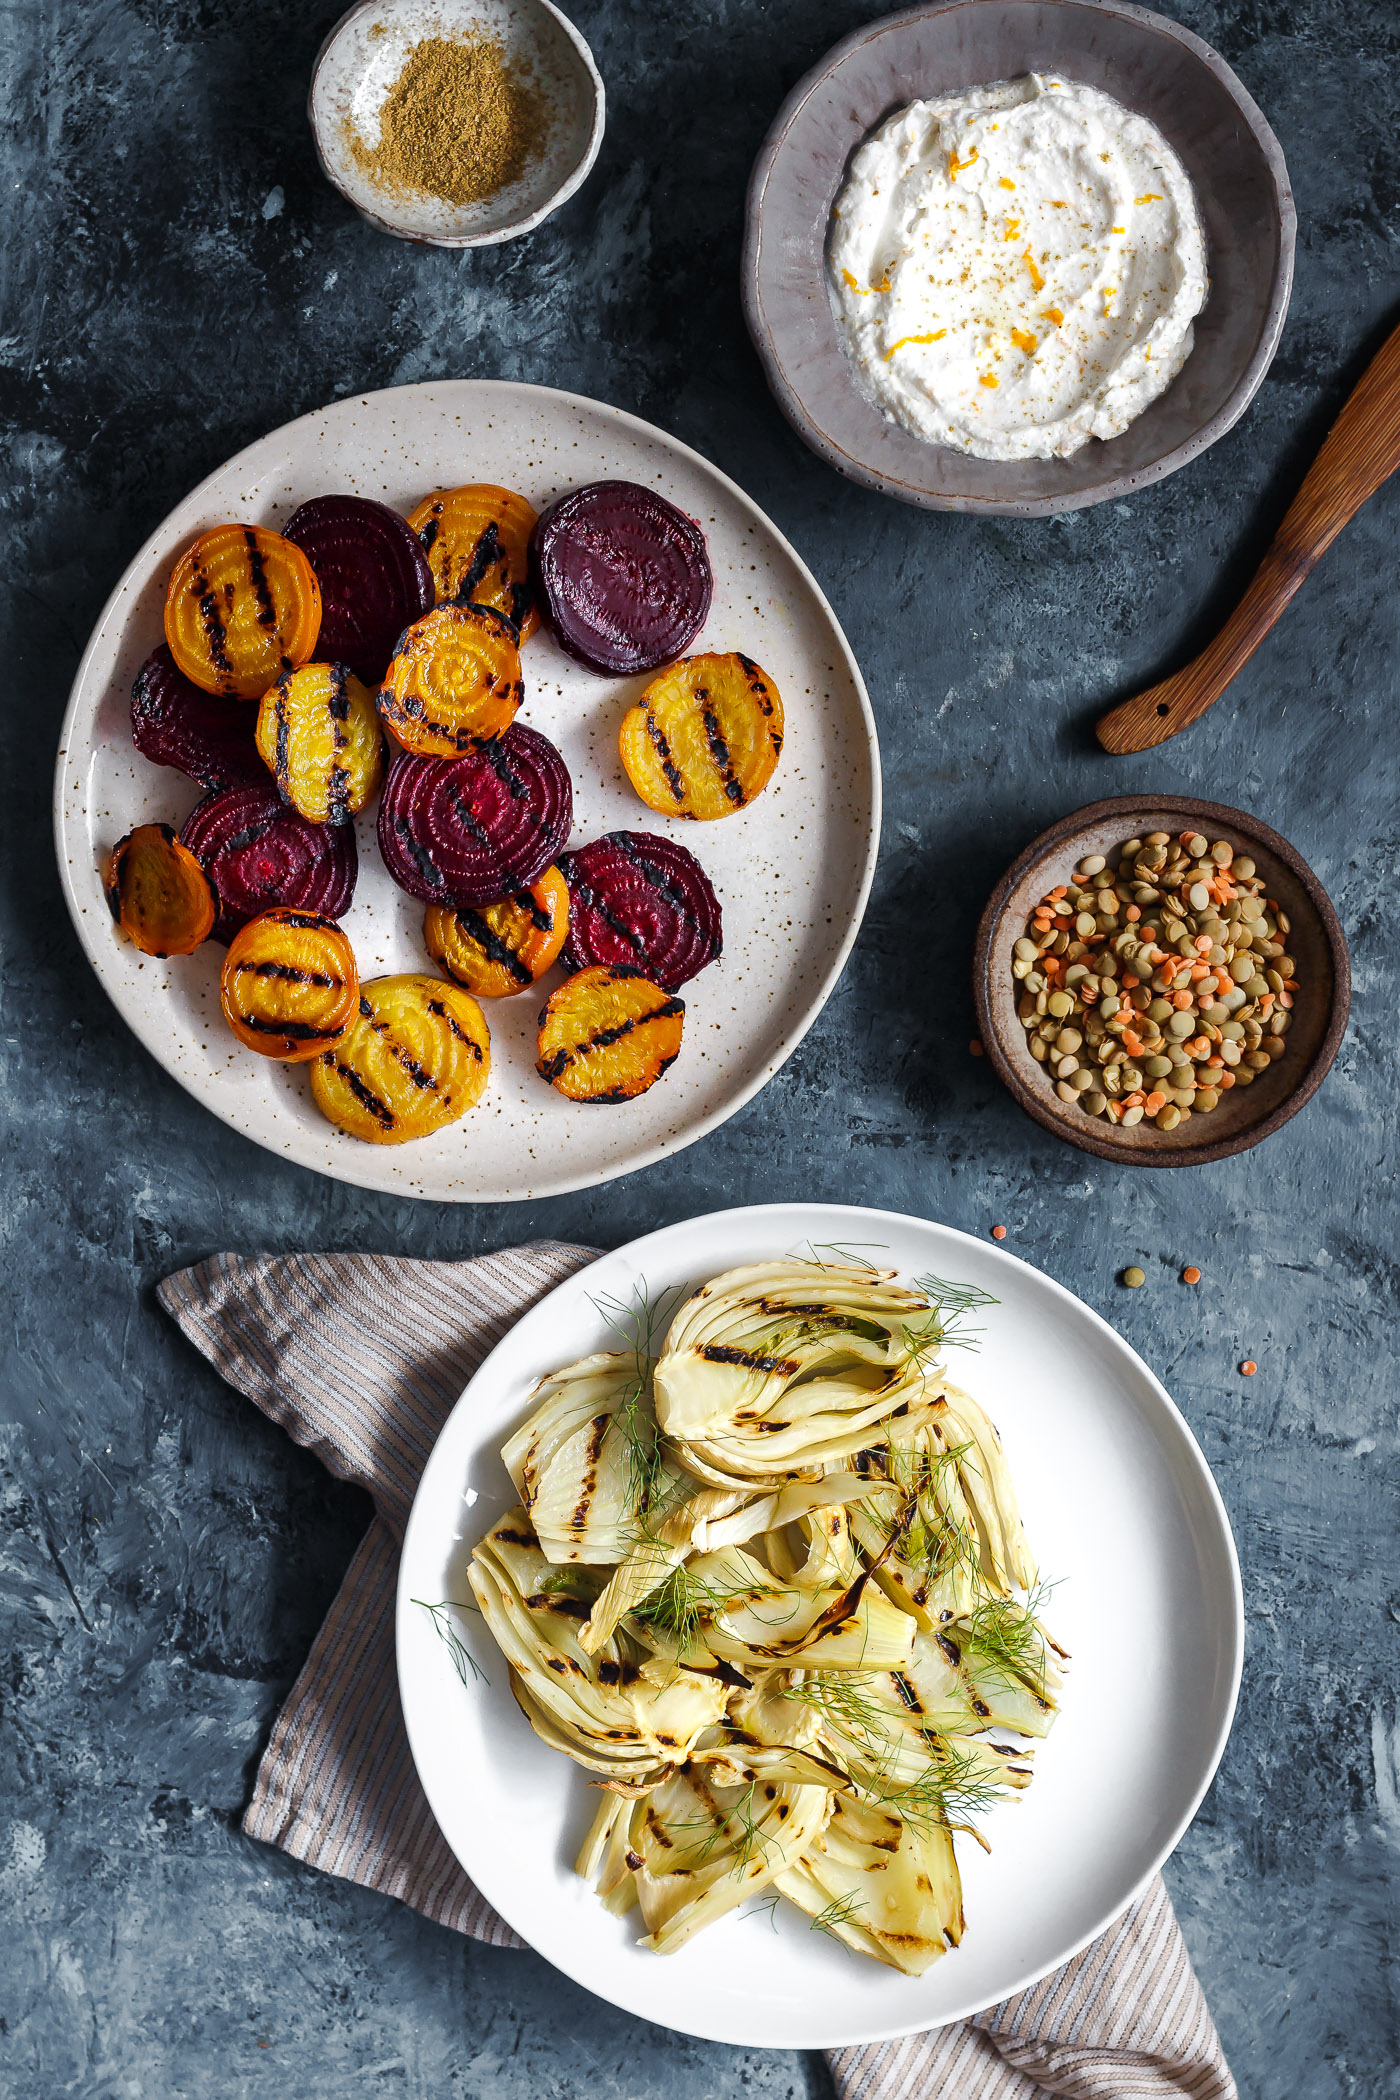 Grilled beets and fennel